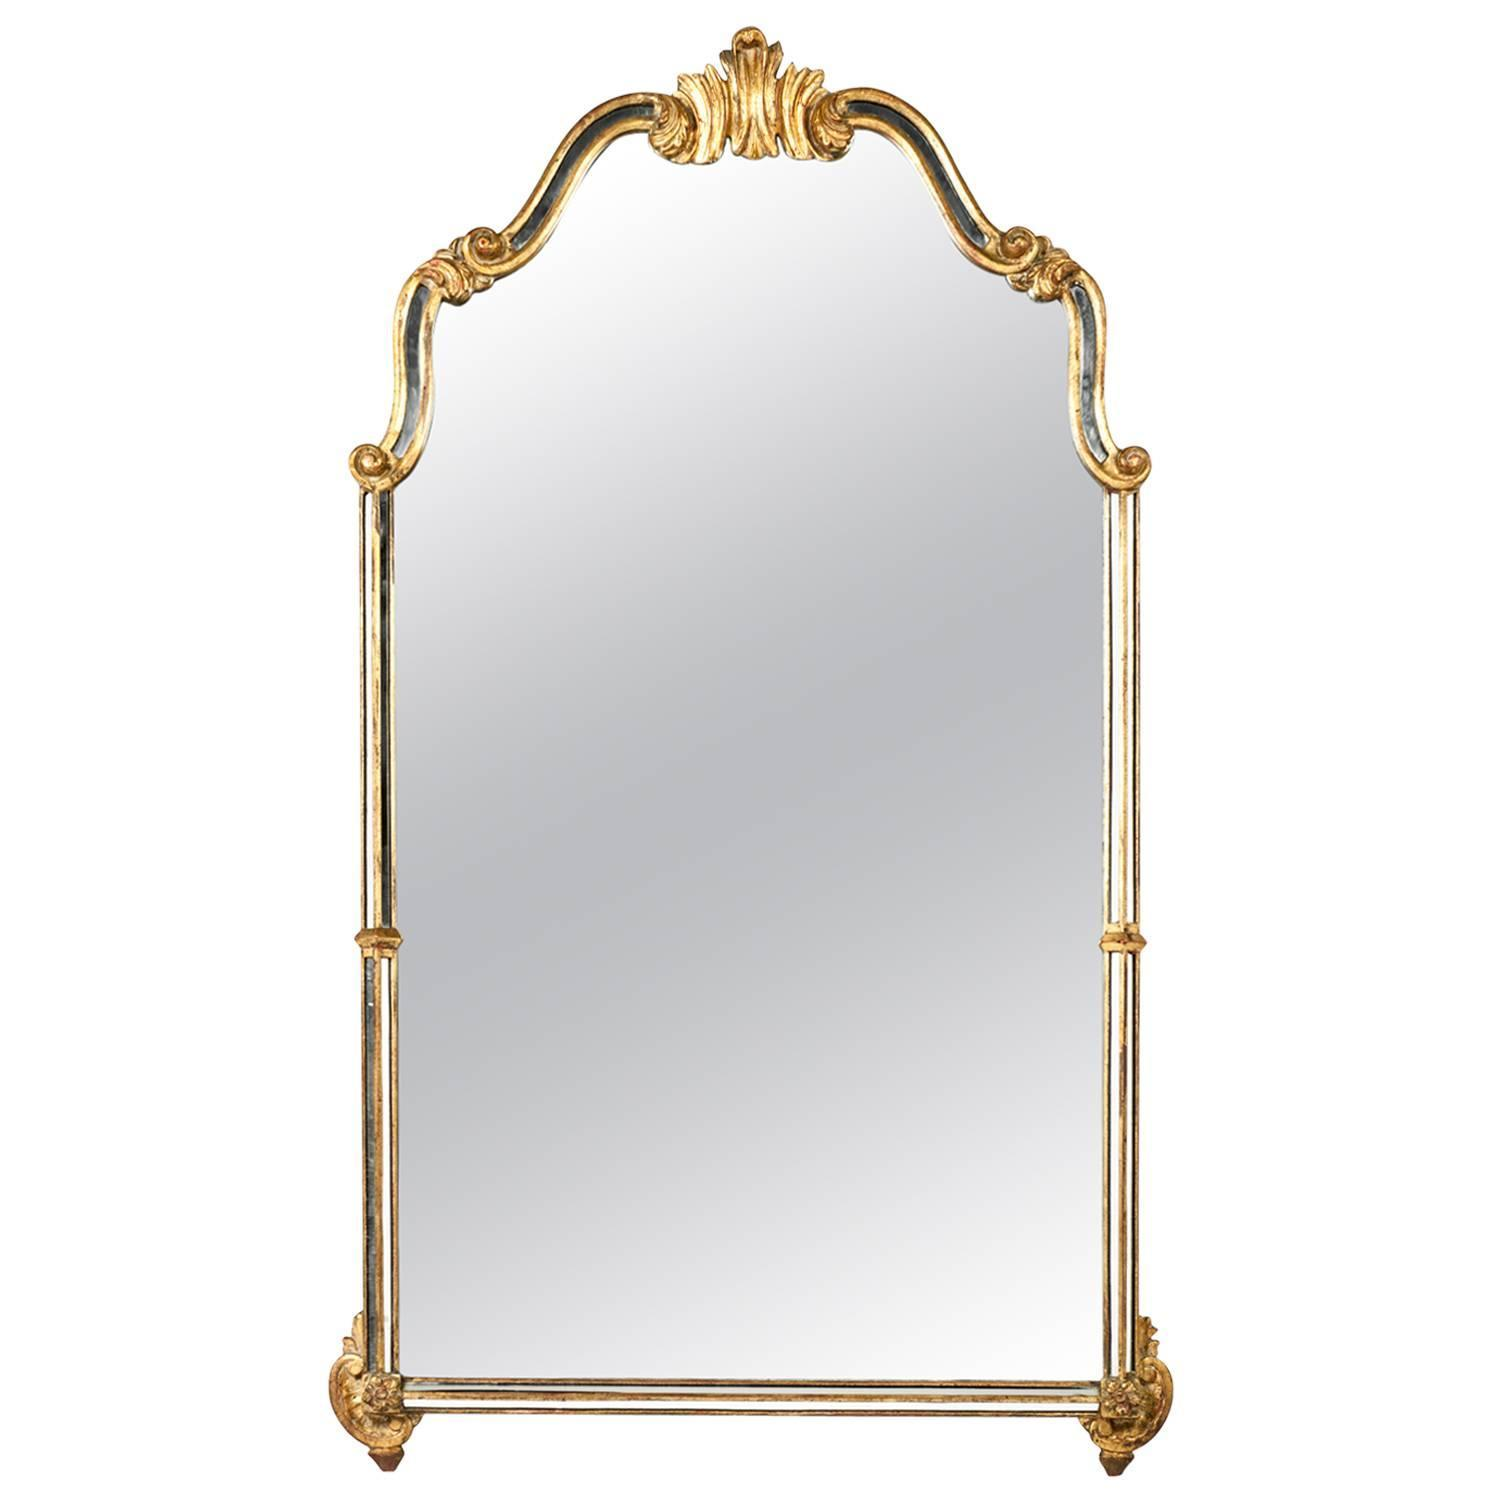 Vintage hanging wall mirror at 1stdibs for Mirror hangers